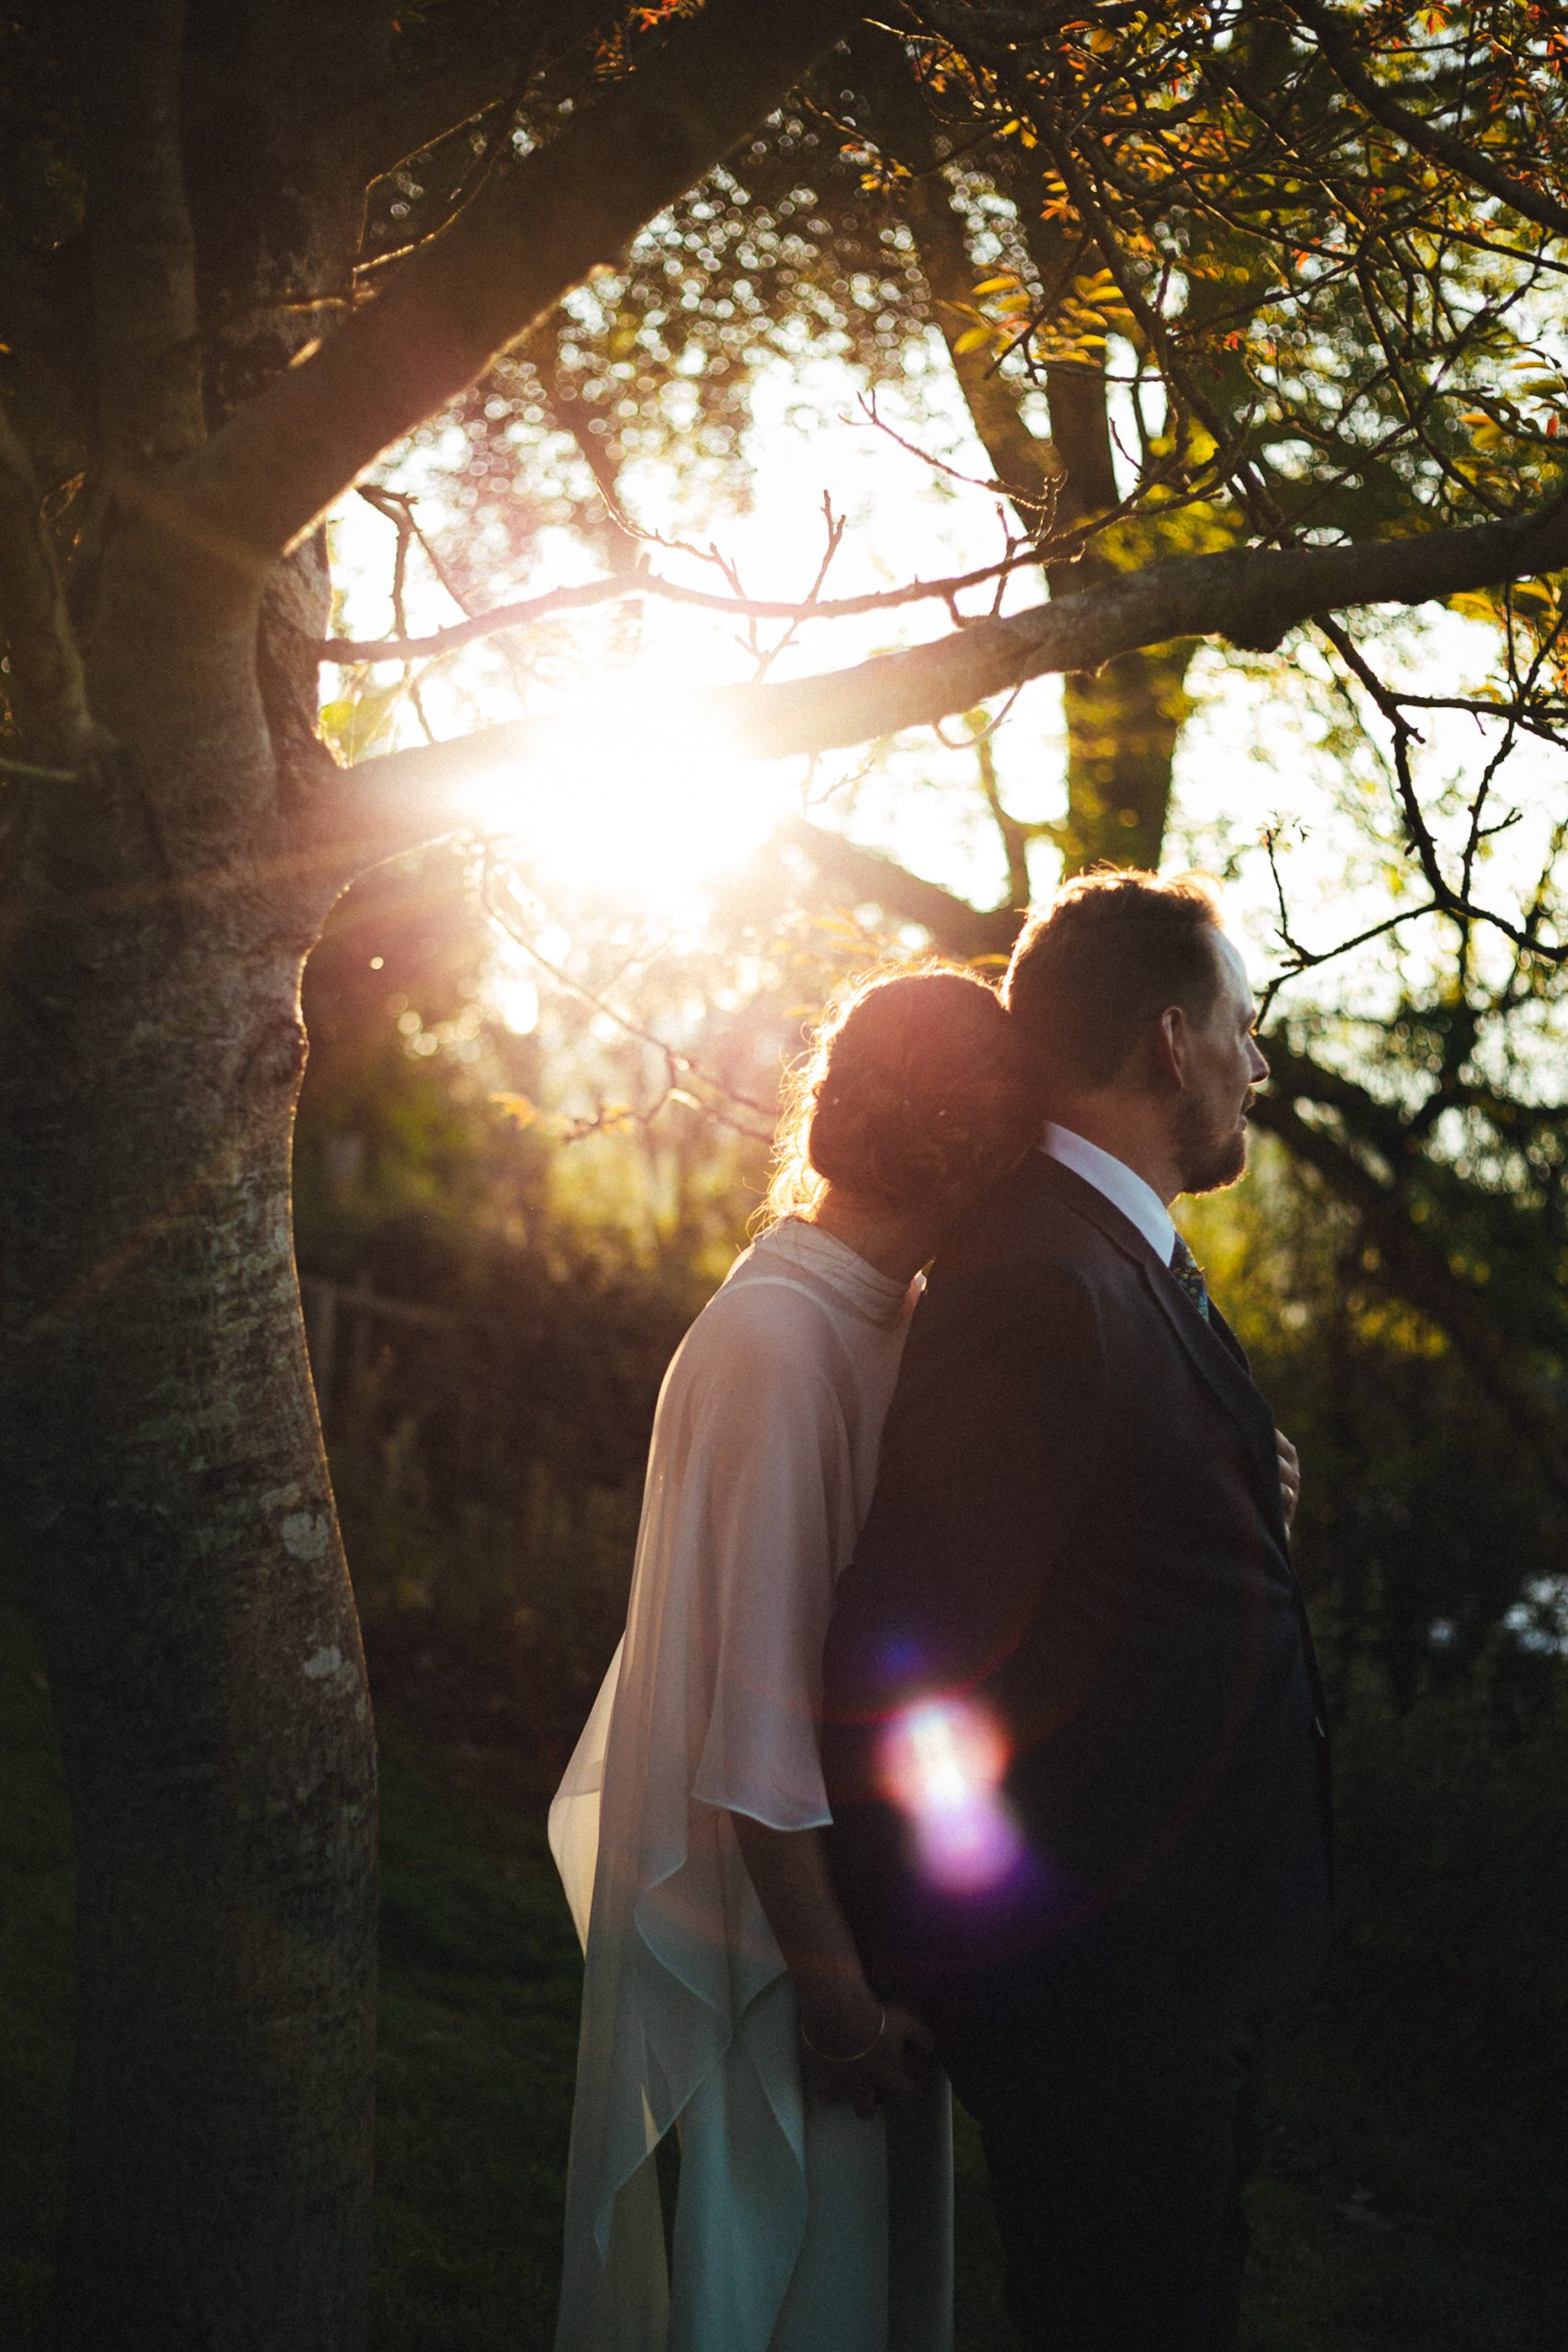 sharpham house wedding, golden hour, trees, couple, sunset, sharpham gardens, sharpham vineyard, devon wedding, devon wedding photography